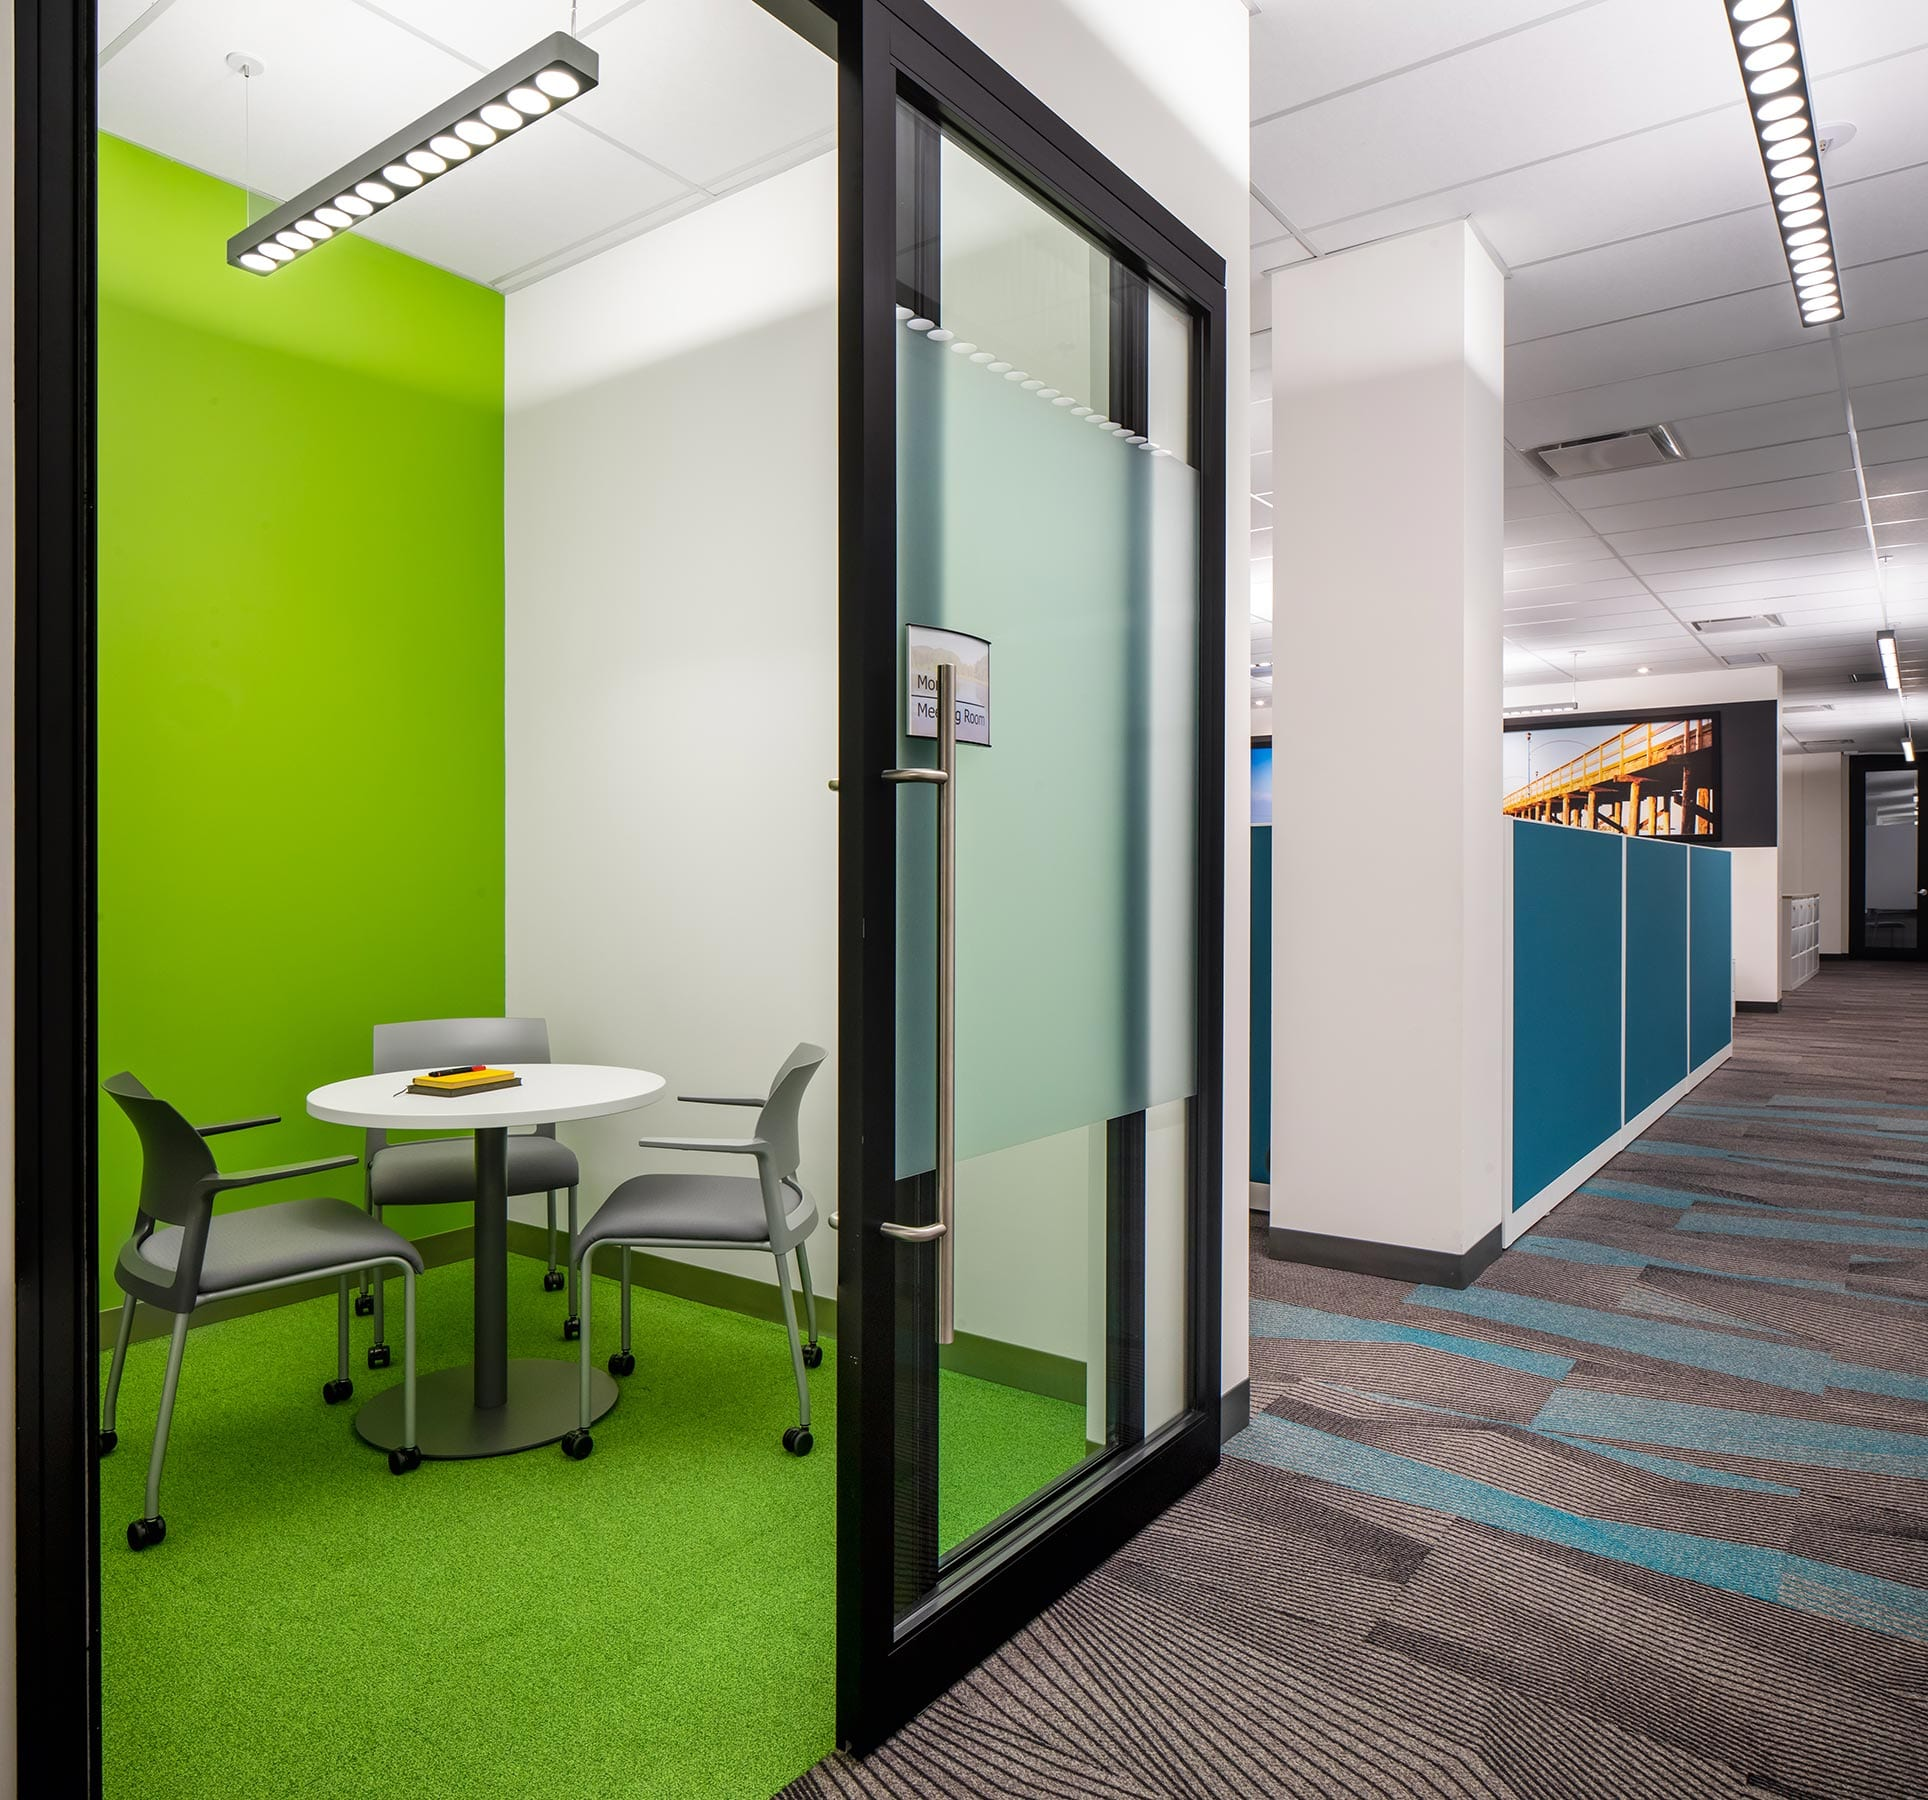 Office interior with new offices, meeting room with partitions and demountable walls